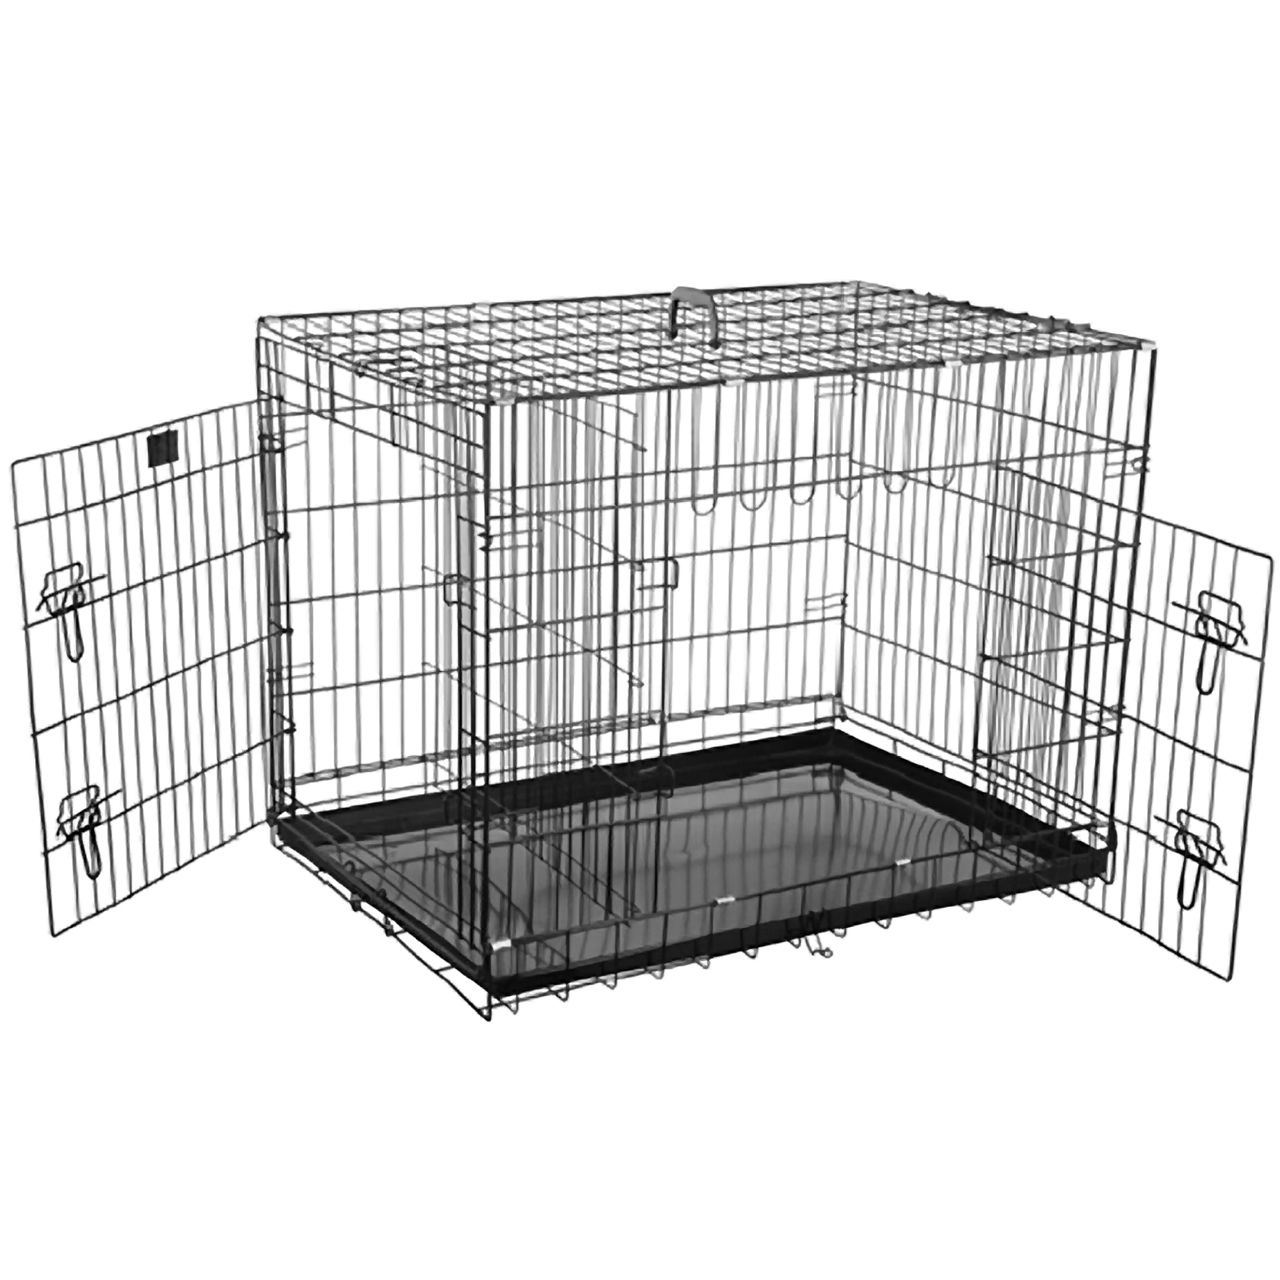 Famous Wire Dog Kennel Festooning - Wiring Diagram Ideas - guapodugh.com